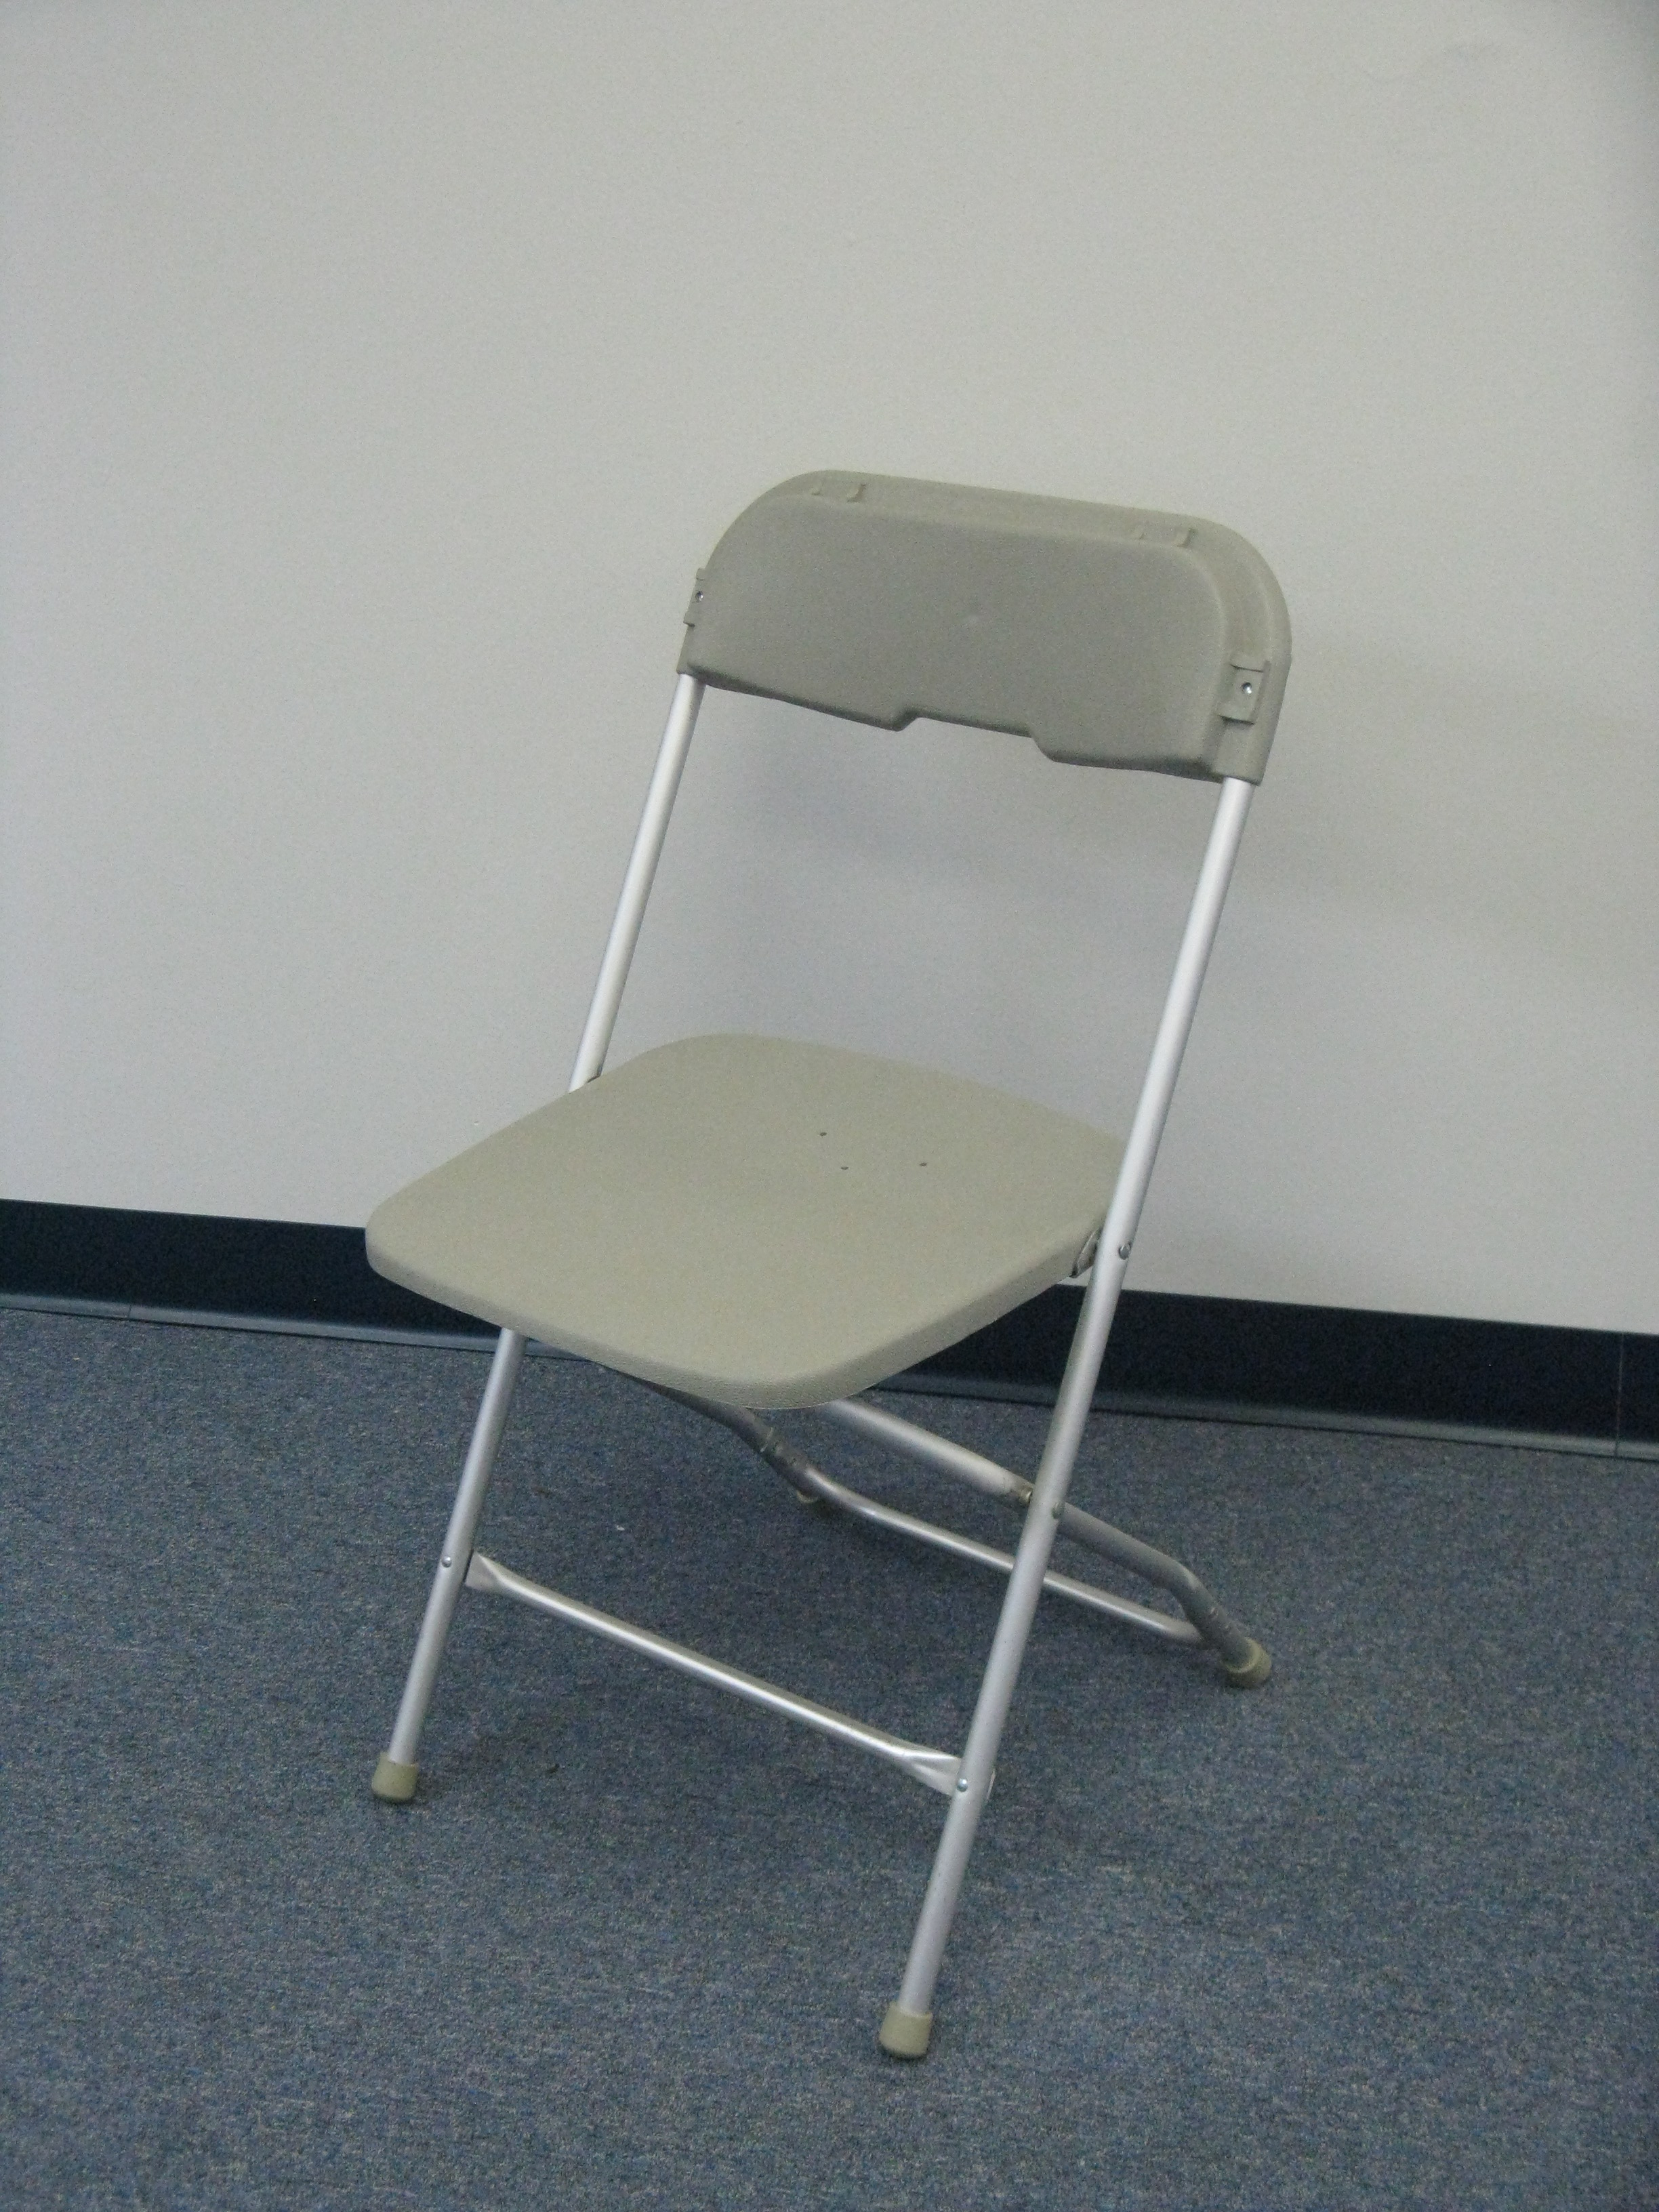 Folding Chairs For Rent Folding Chairs For Rent Grey Or White With Padding